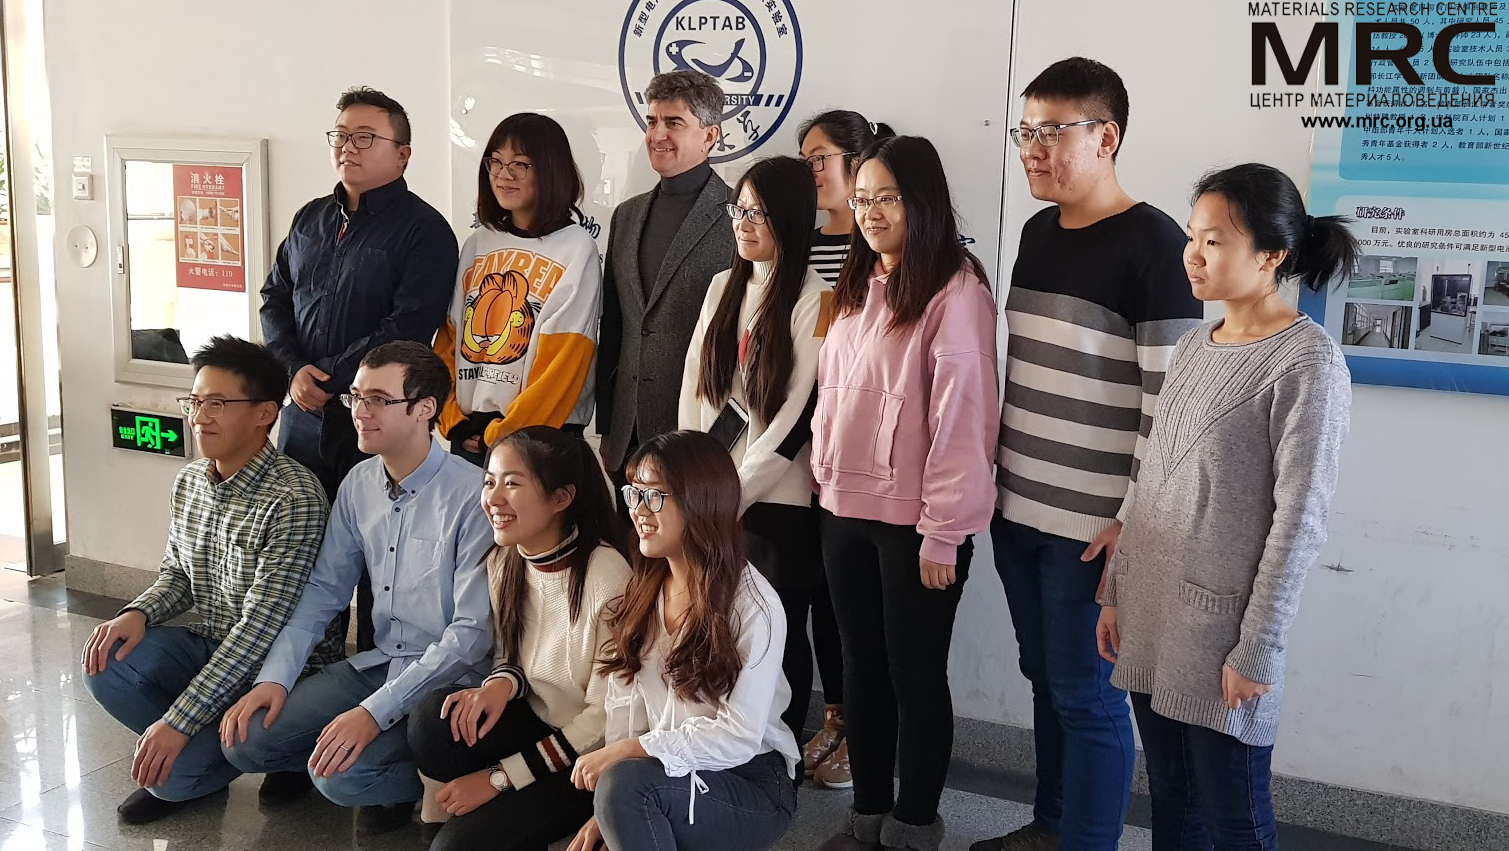 Professor Yury Gogotsi and his research group, Jilin University, Changchun, China